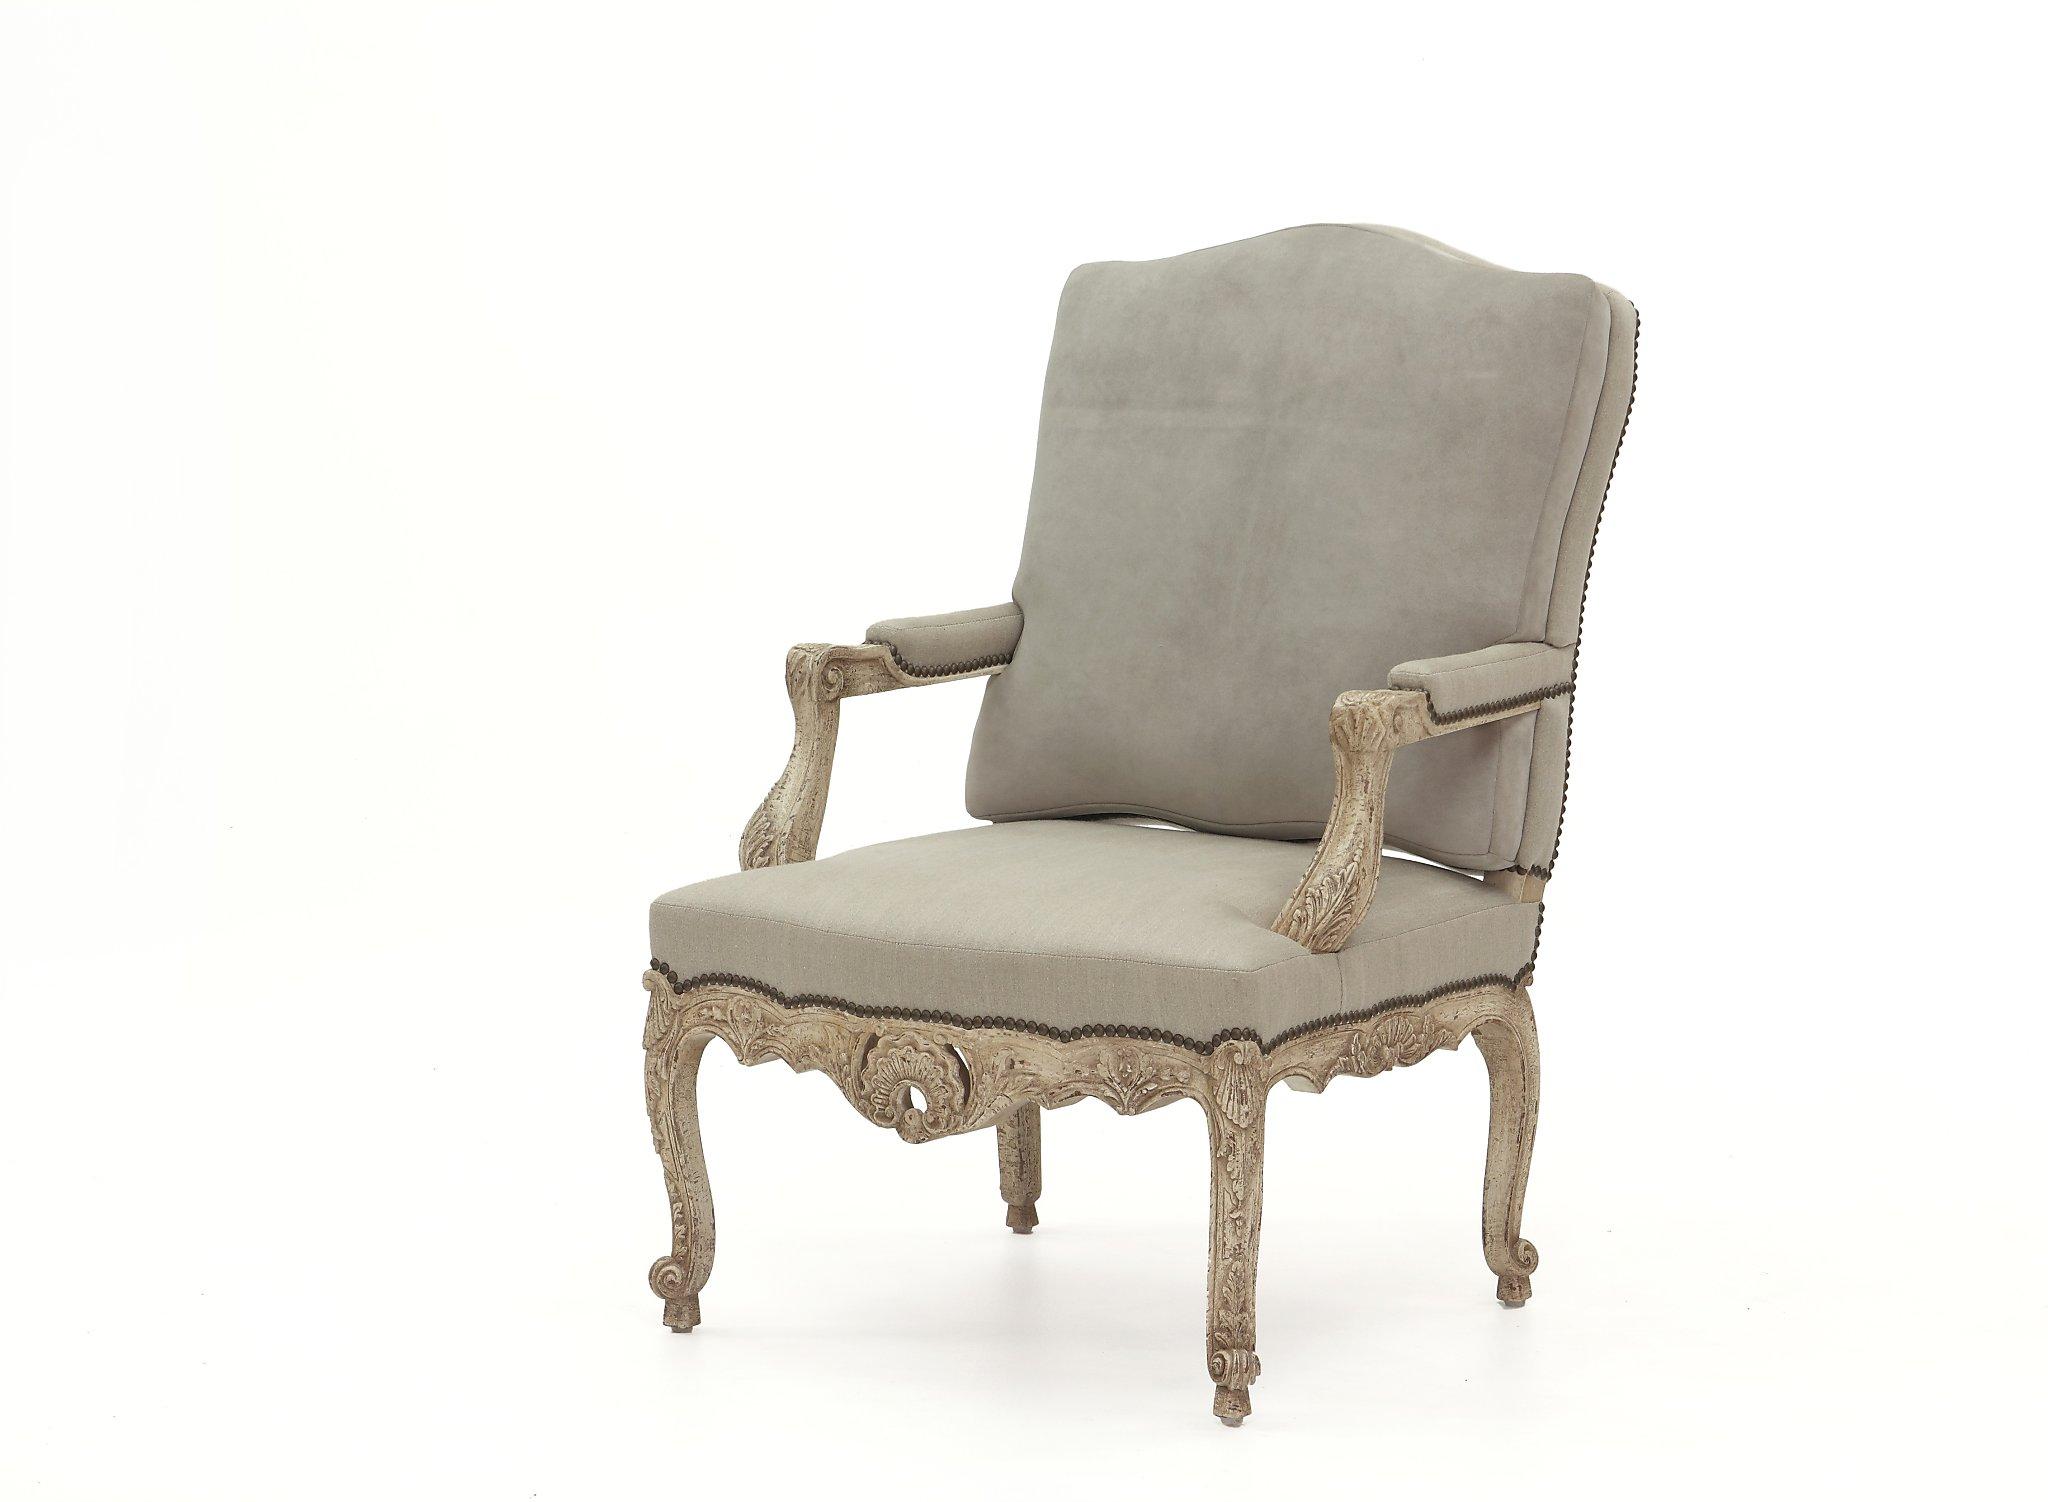 Michael Taylor 39 S Iconic Furniture Pieces Sfgate